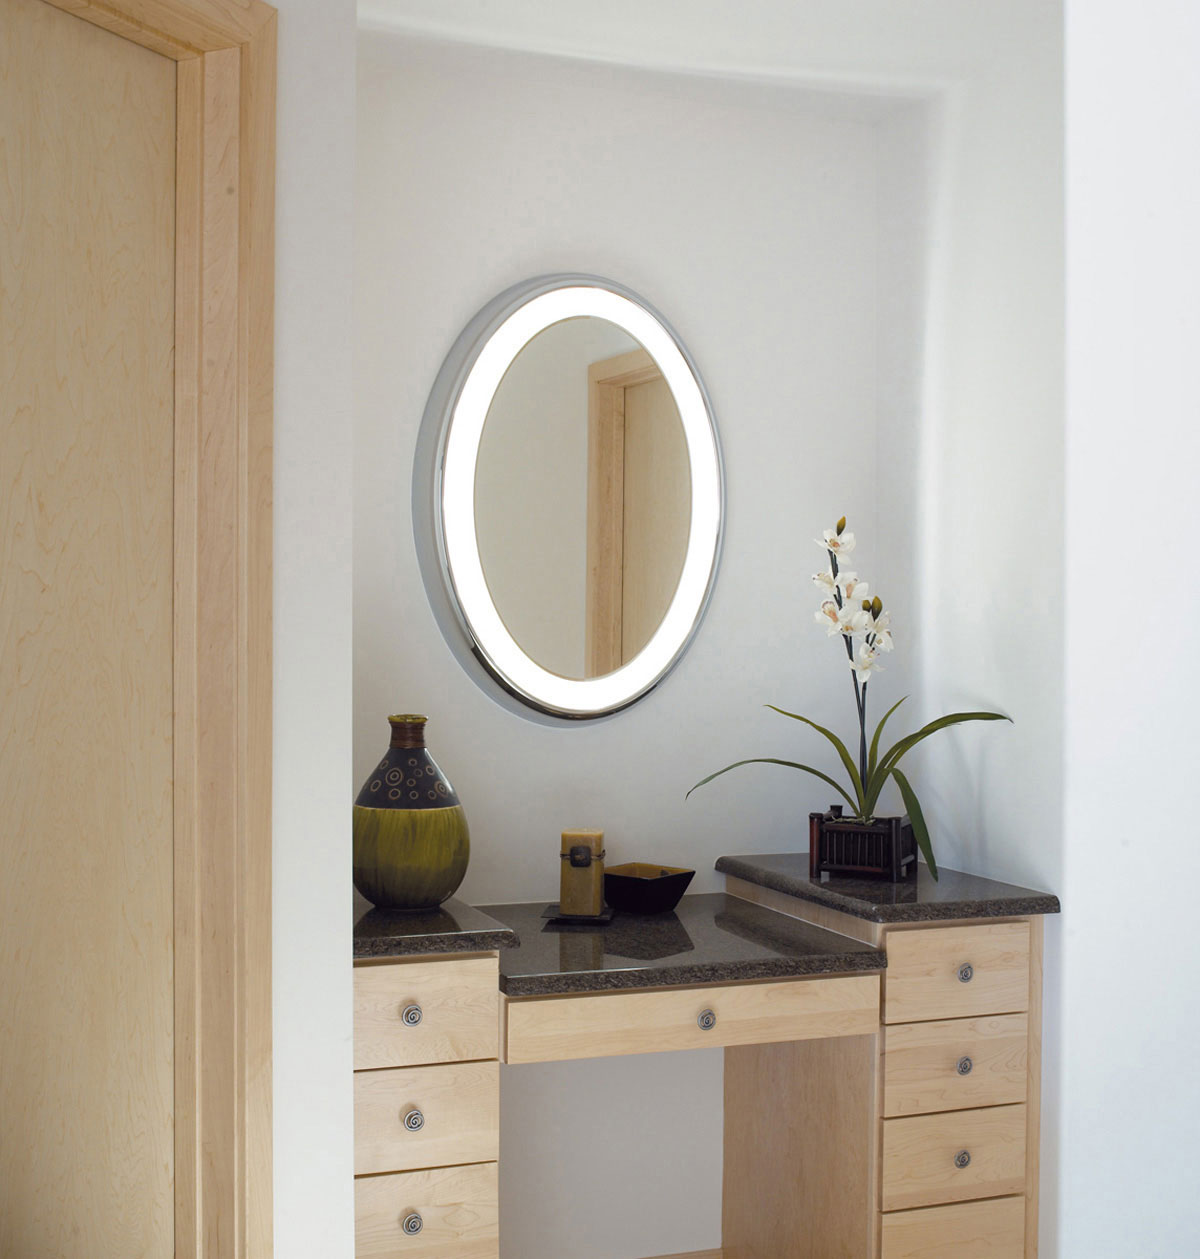 entryway table creating inviting impression at the first sight. Tigris Oval Surface Mirror By Tech Lighting Entryway Table Creating Inviting Impression At The First Sight N